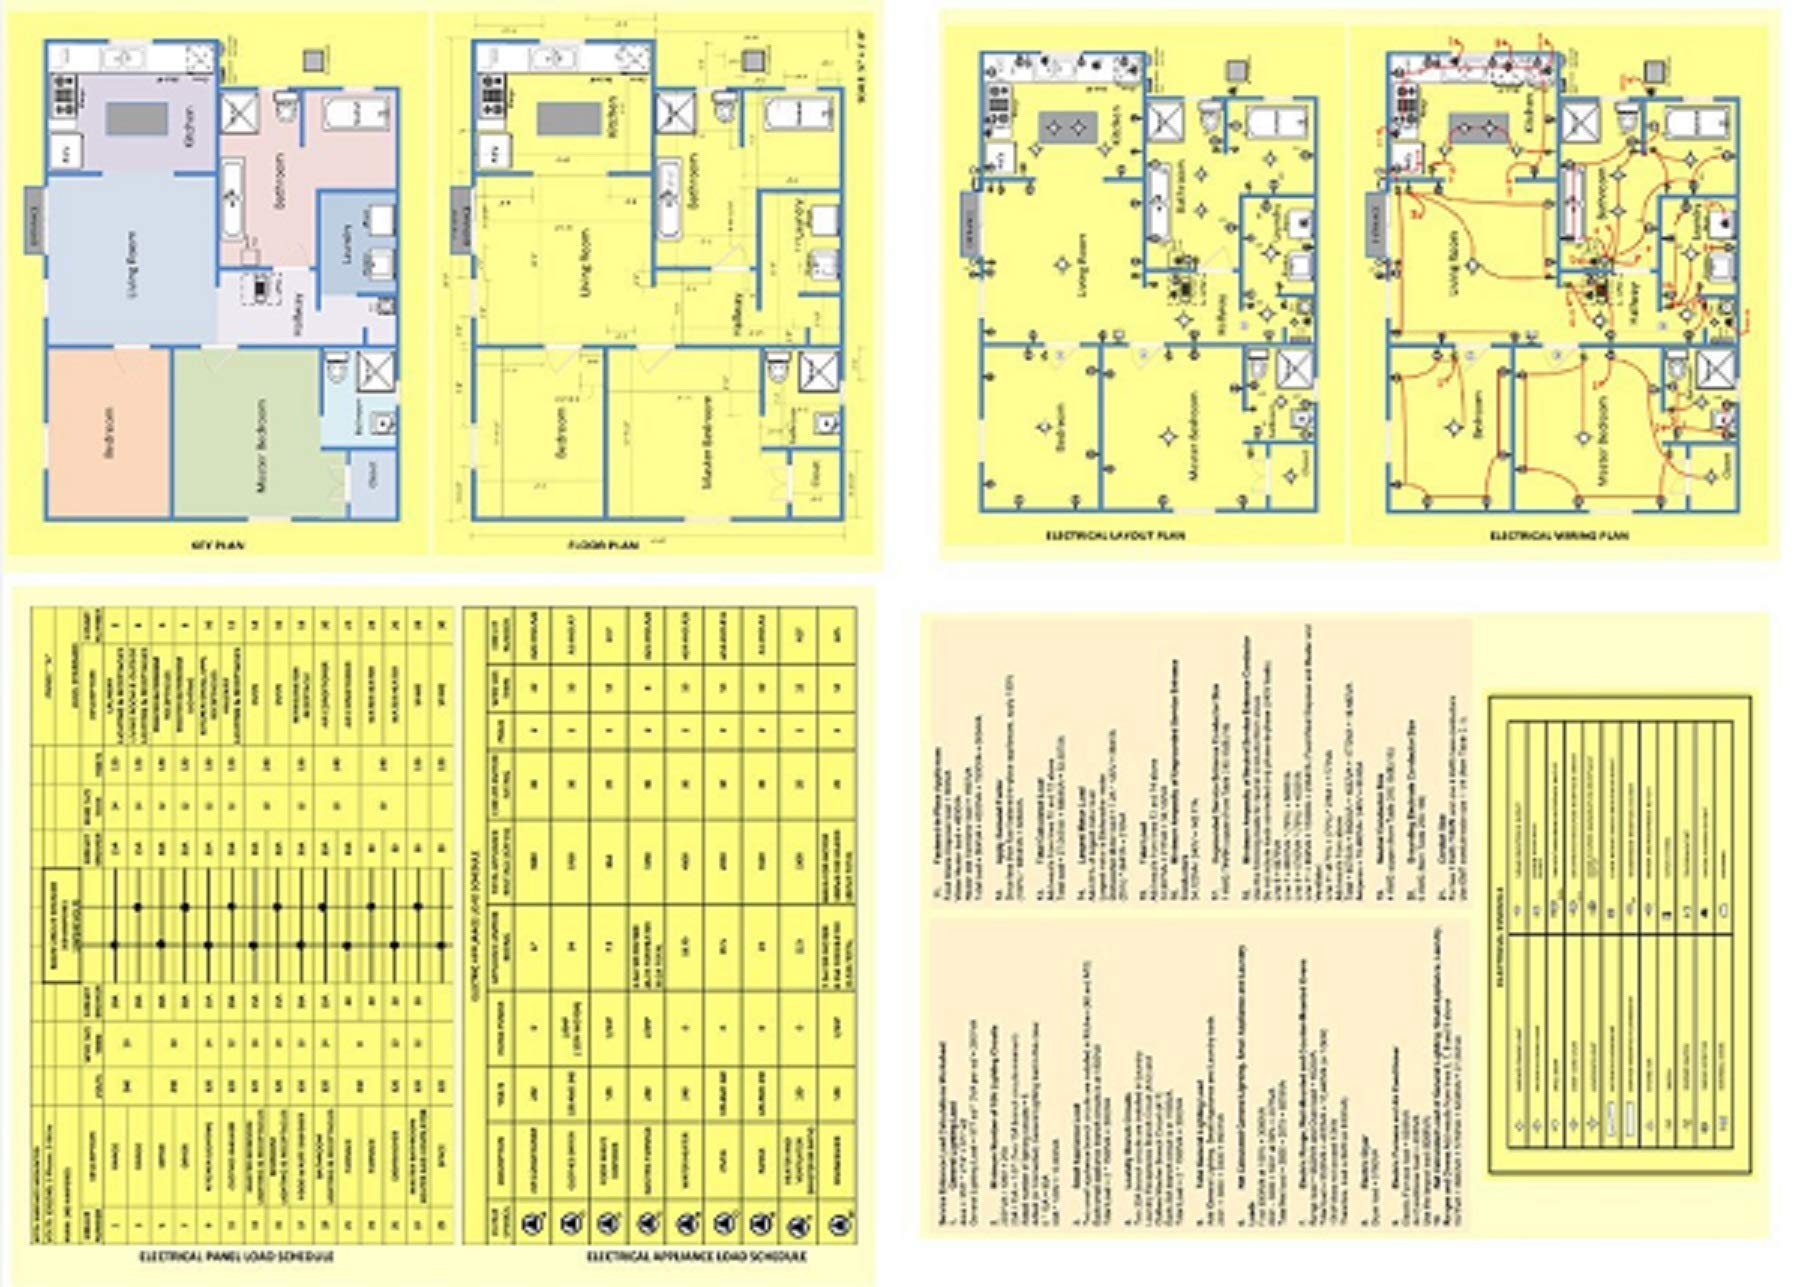 Residential Electrical Wiring Diagrams Sample House Plan Layouts And Calculations Itech Tools 0719279145267 Amazon Com Books